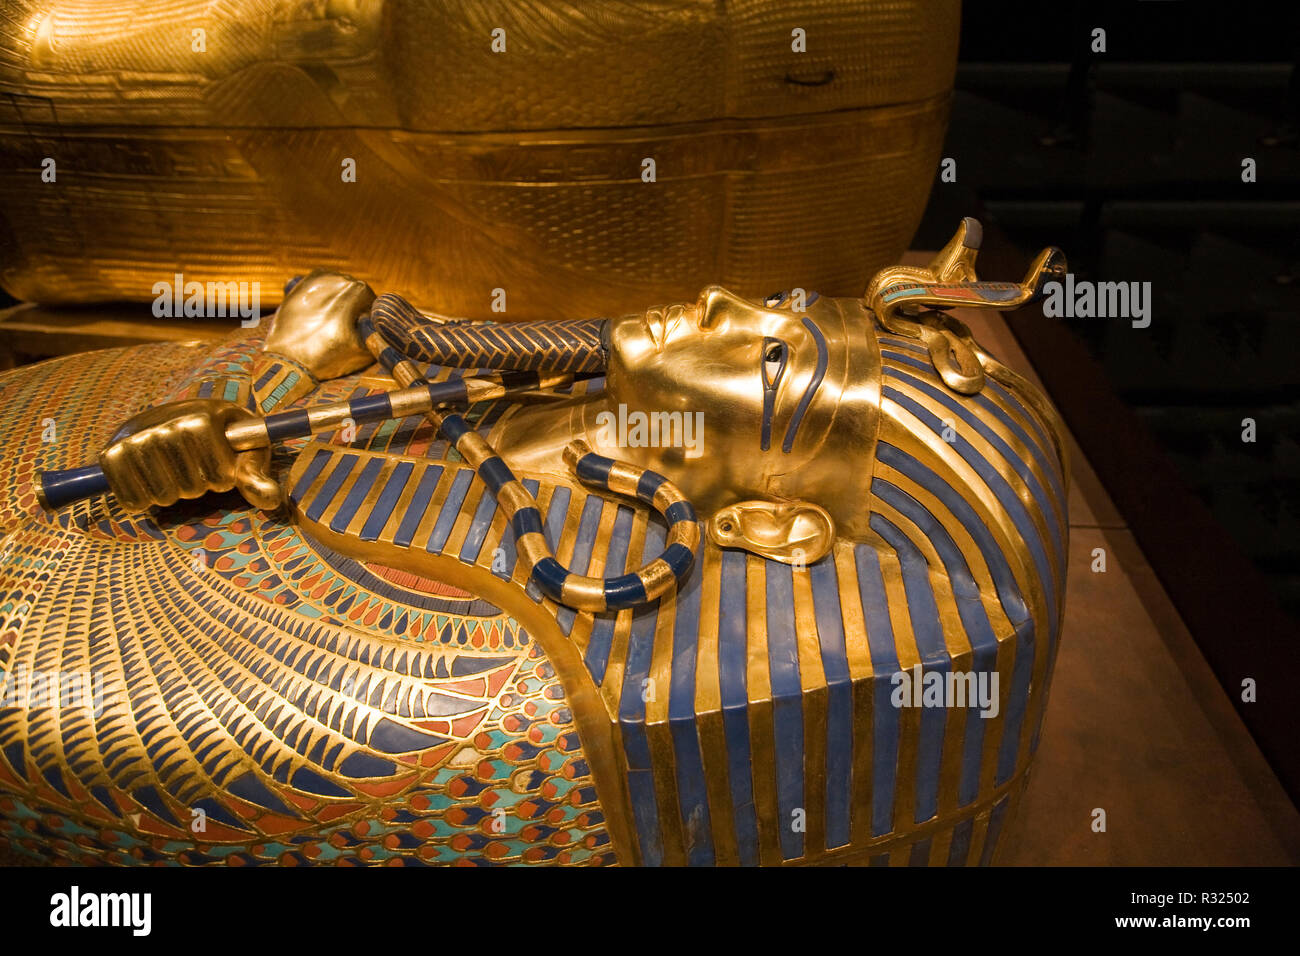 The front of the inner sarcophagus of King Tutankhamun, or King tut, on display at an American museum. - Stock Image